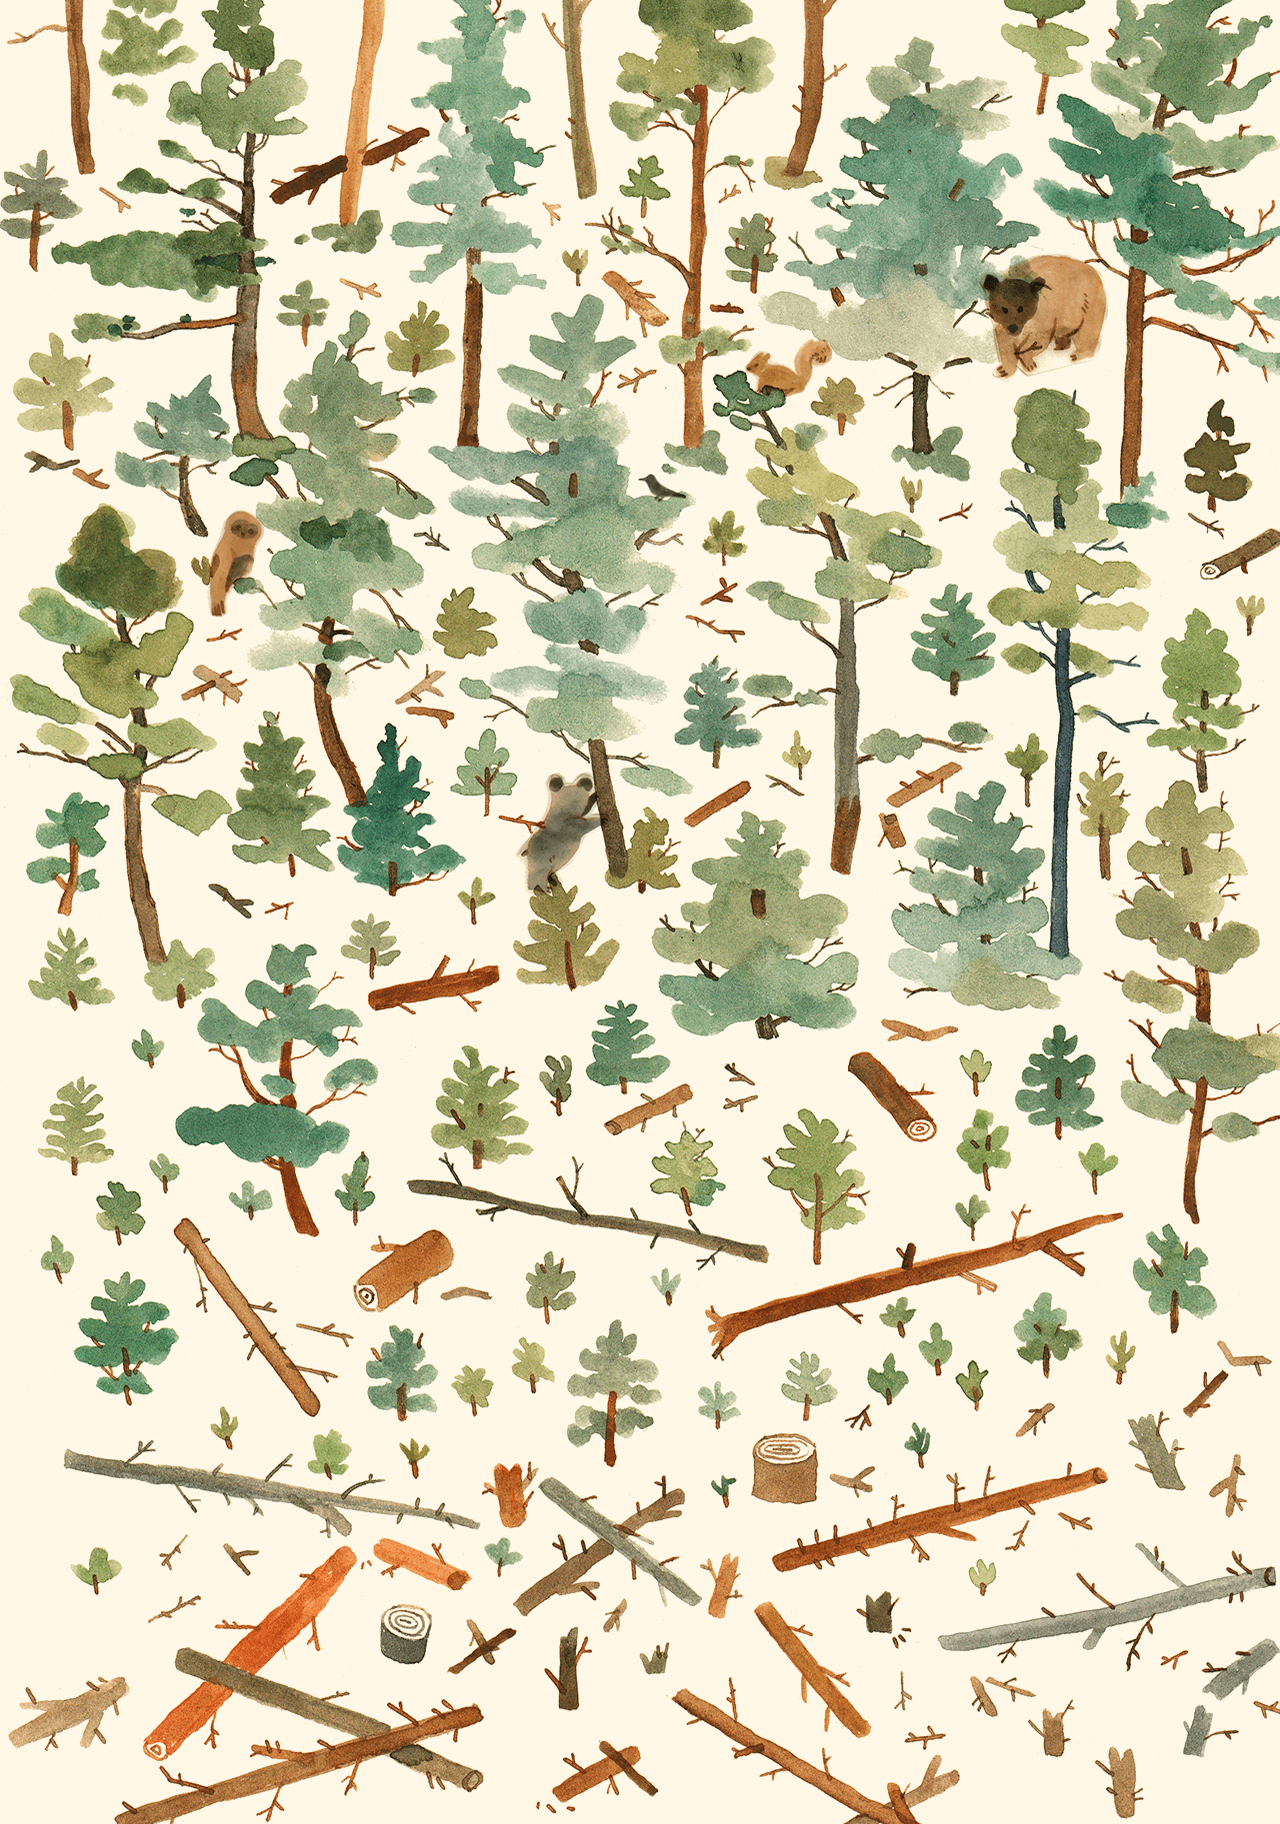 Editorial illustration of a forest with bears